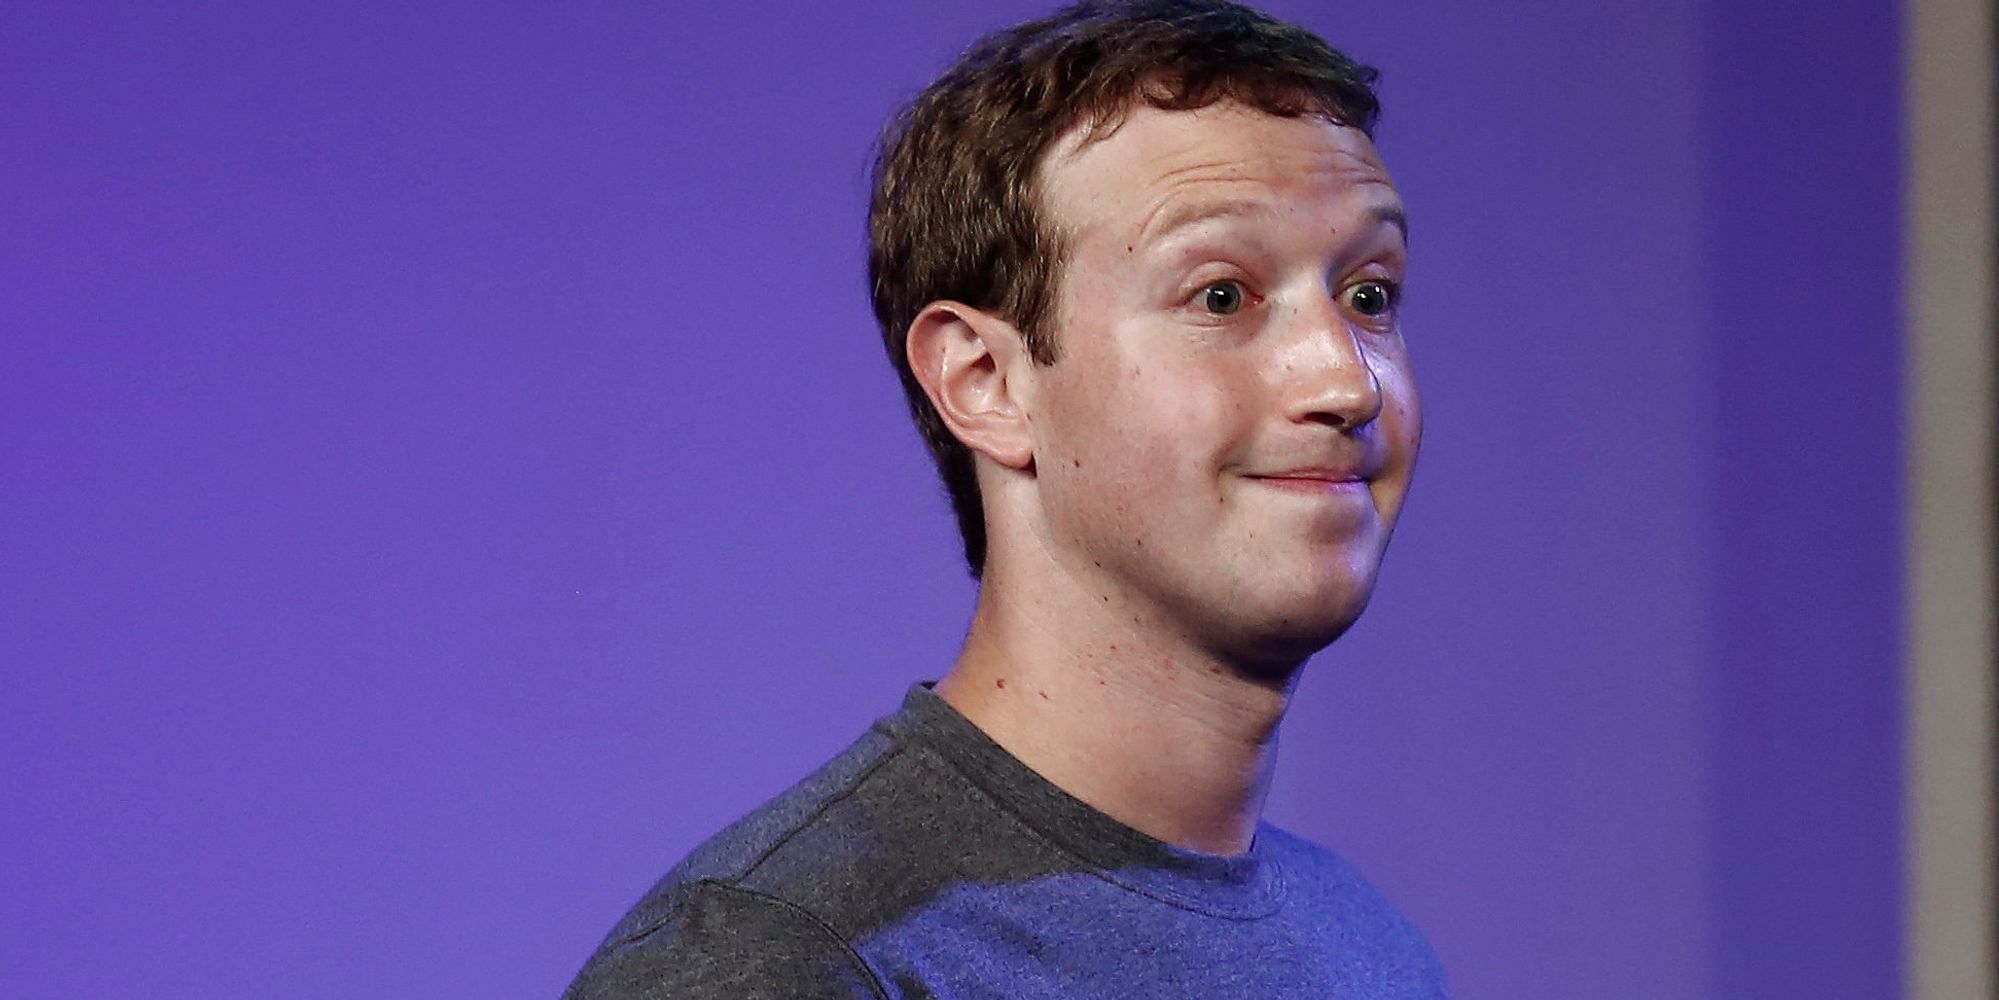 Facebook Donates Some $100,000 to CPAC, Reminding Users Again that it's not Liberal